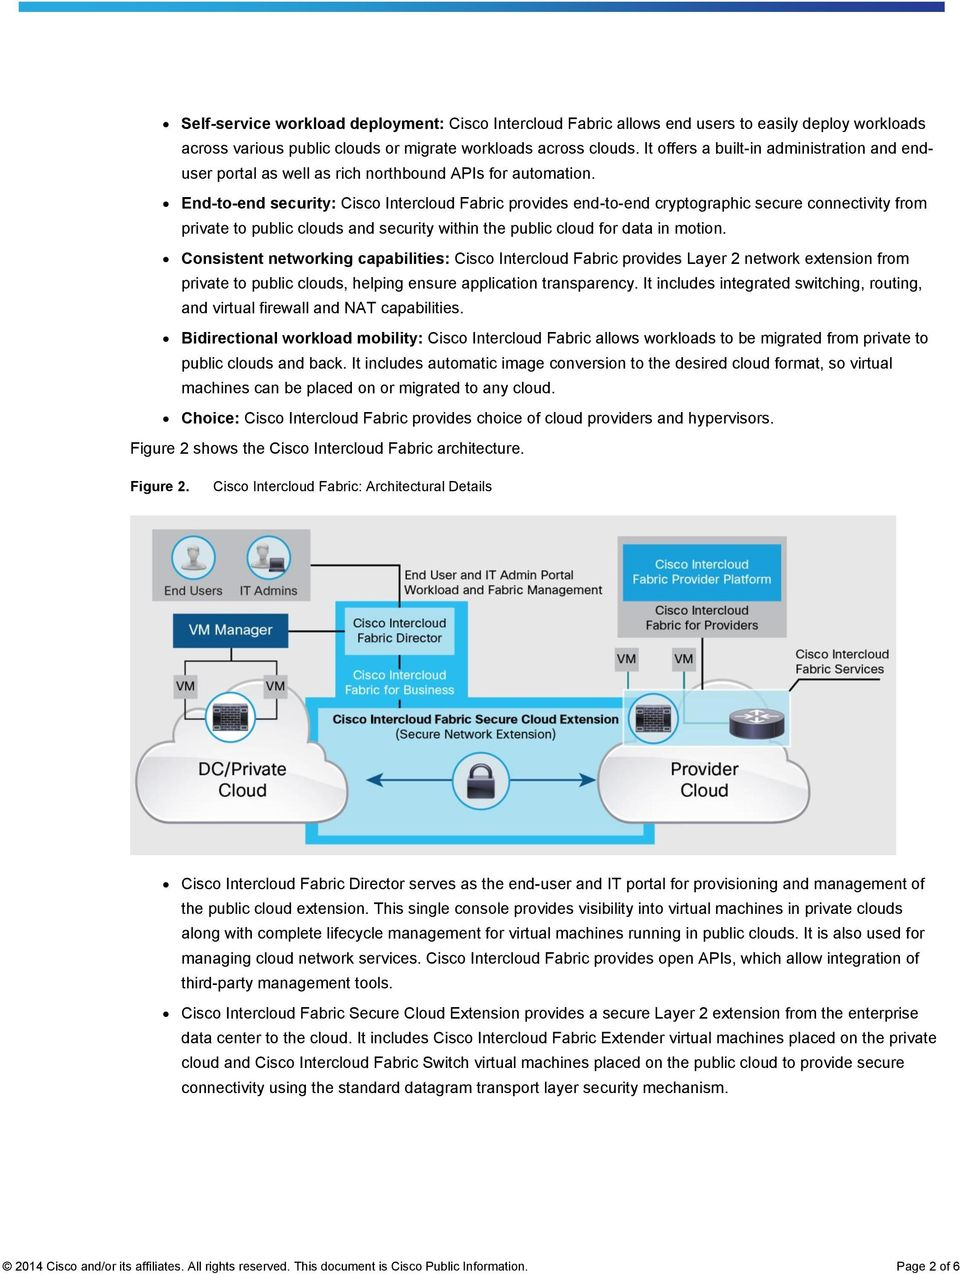 End-to-end security: Cisco Intercloud Fabric provides end-to-end cryptographic secure connectivity from private to public clouds and security within the public cloud for data in motion.